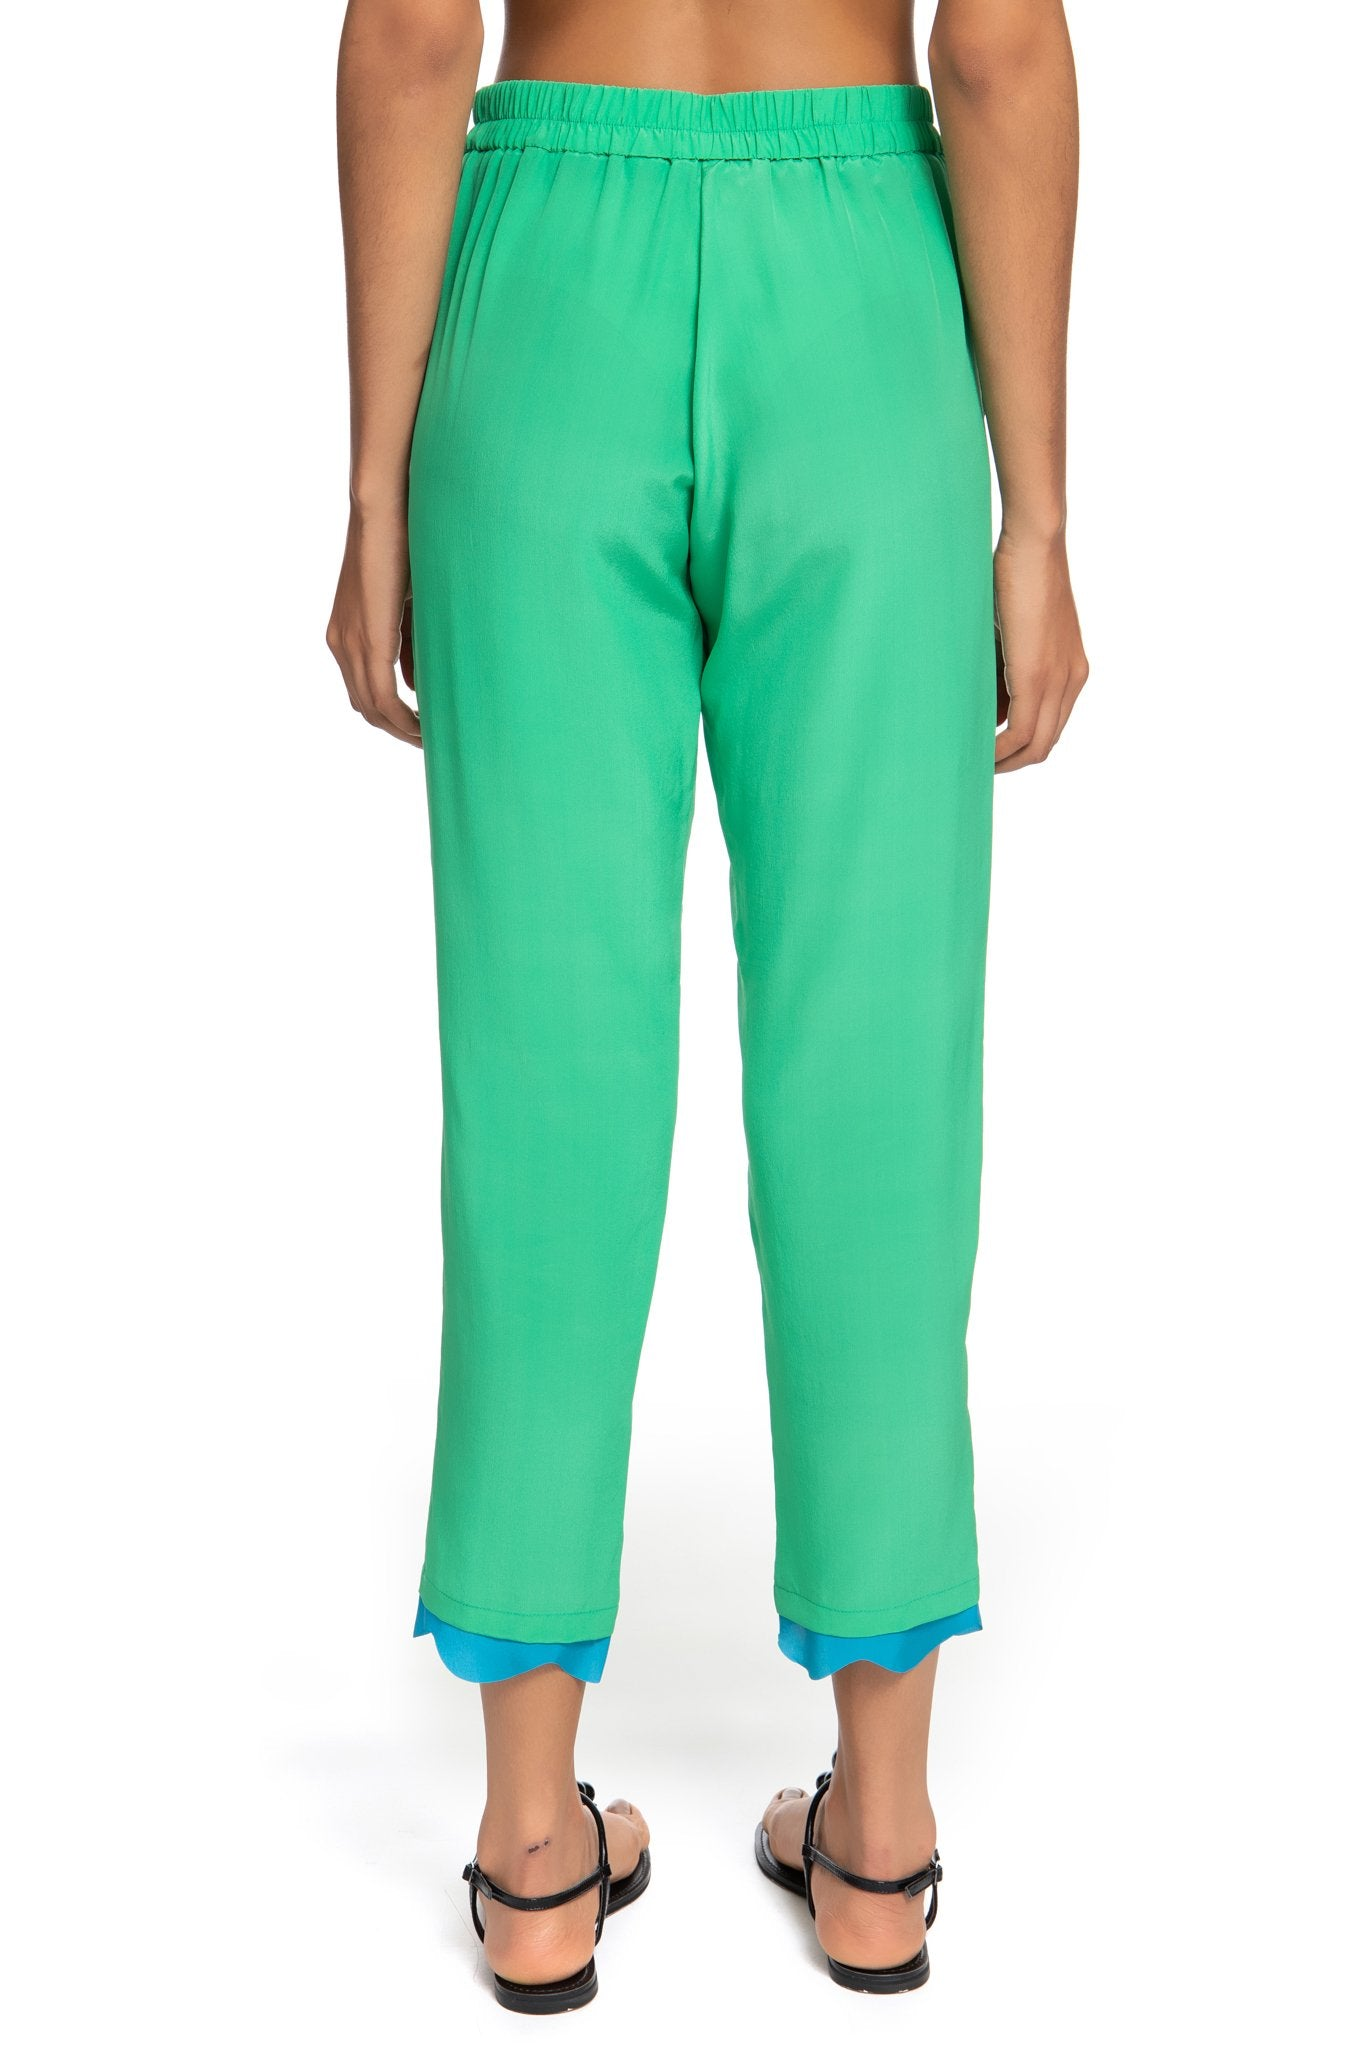 GREEN WAVE ELASTIC PANTS